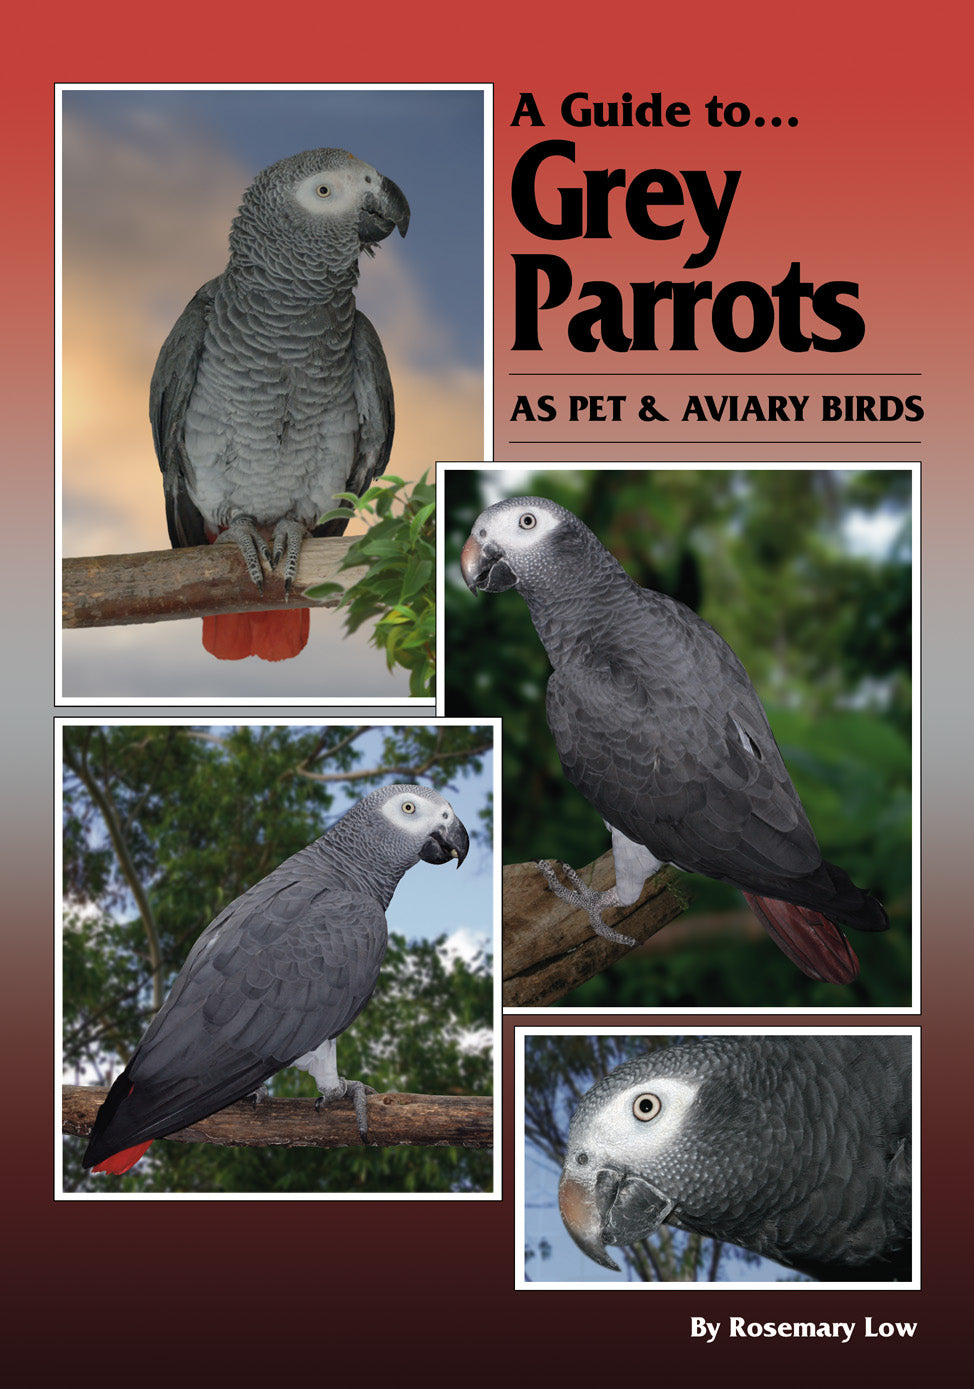 A Guide to Grey Parrots as Pet and Aviary Birds (Soft Cover)